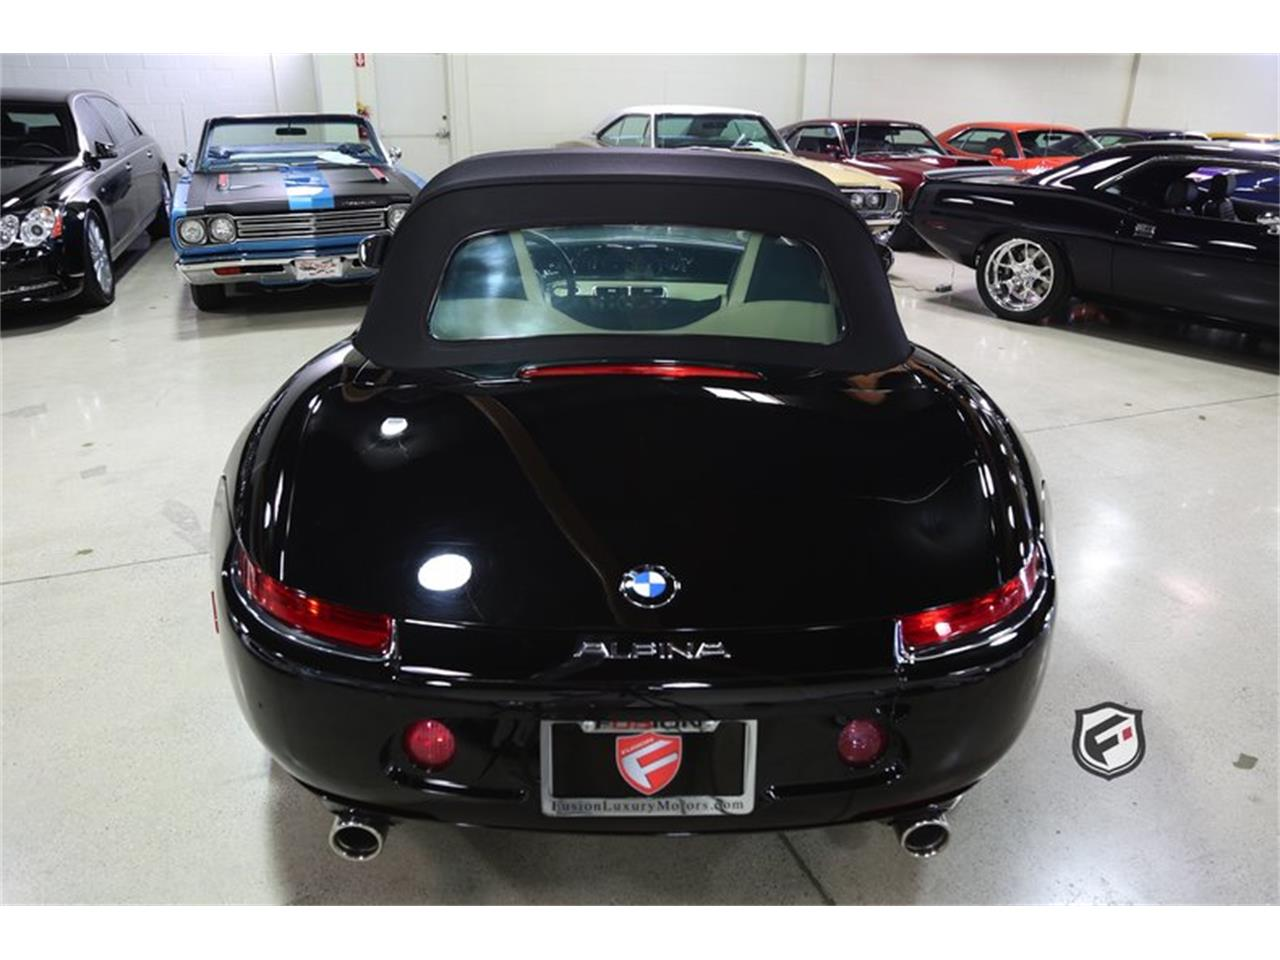 2003 Bmw Z8 Alpina For Sale Classiccars Com Cc 877523